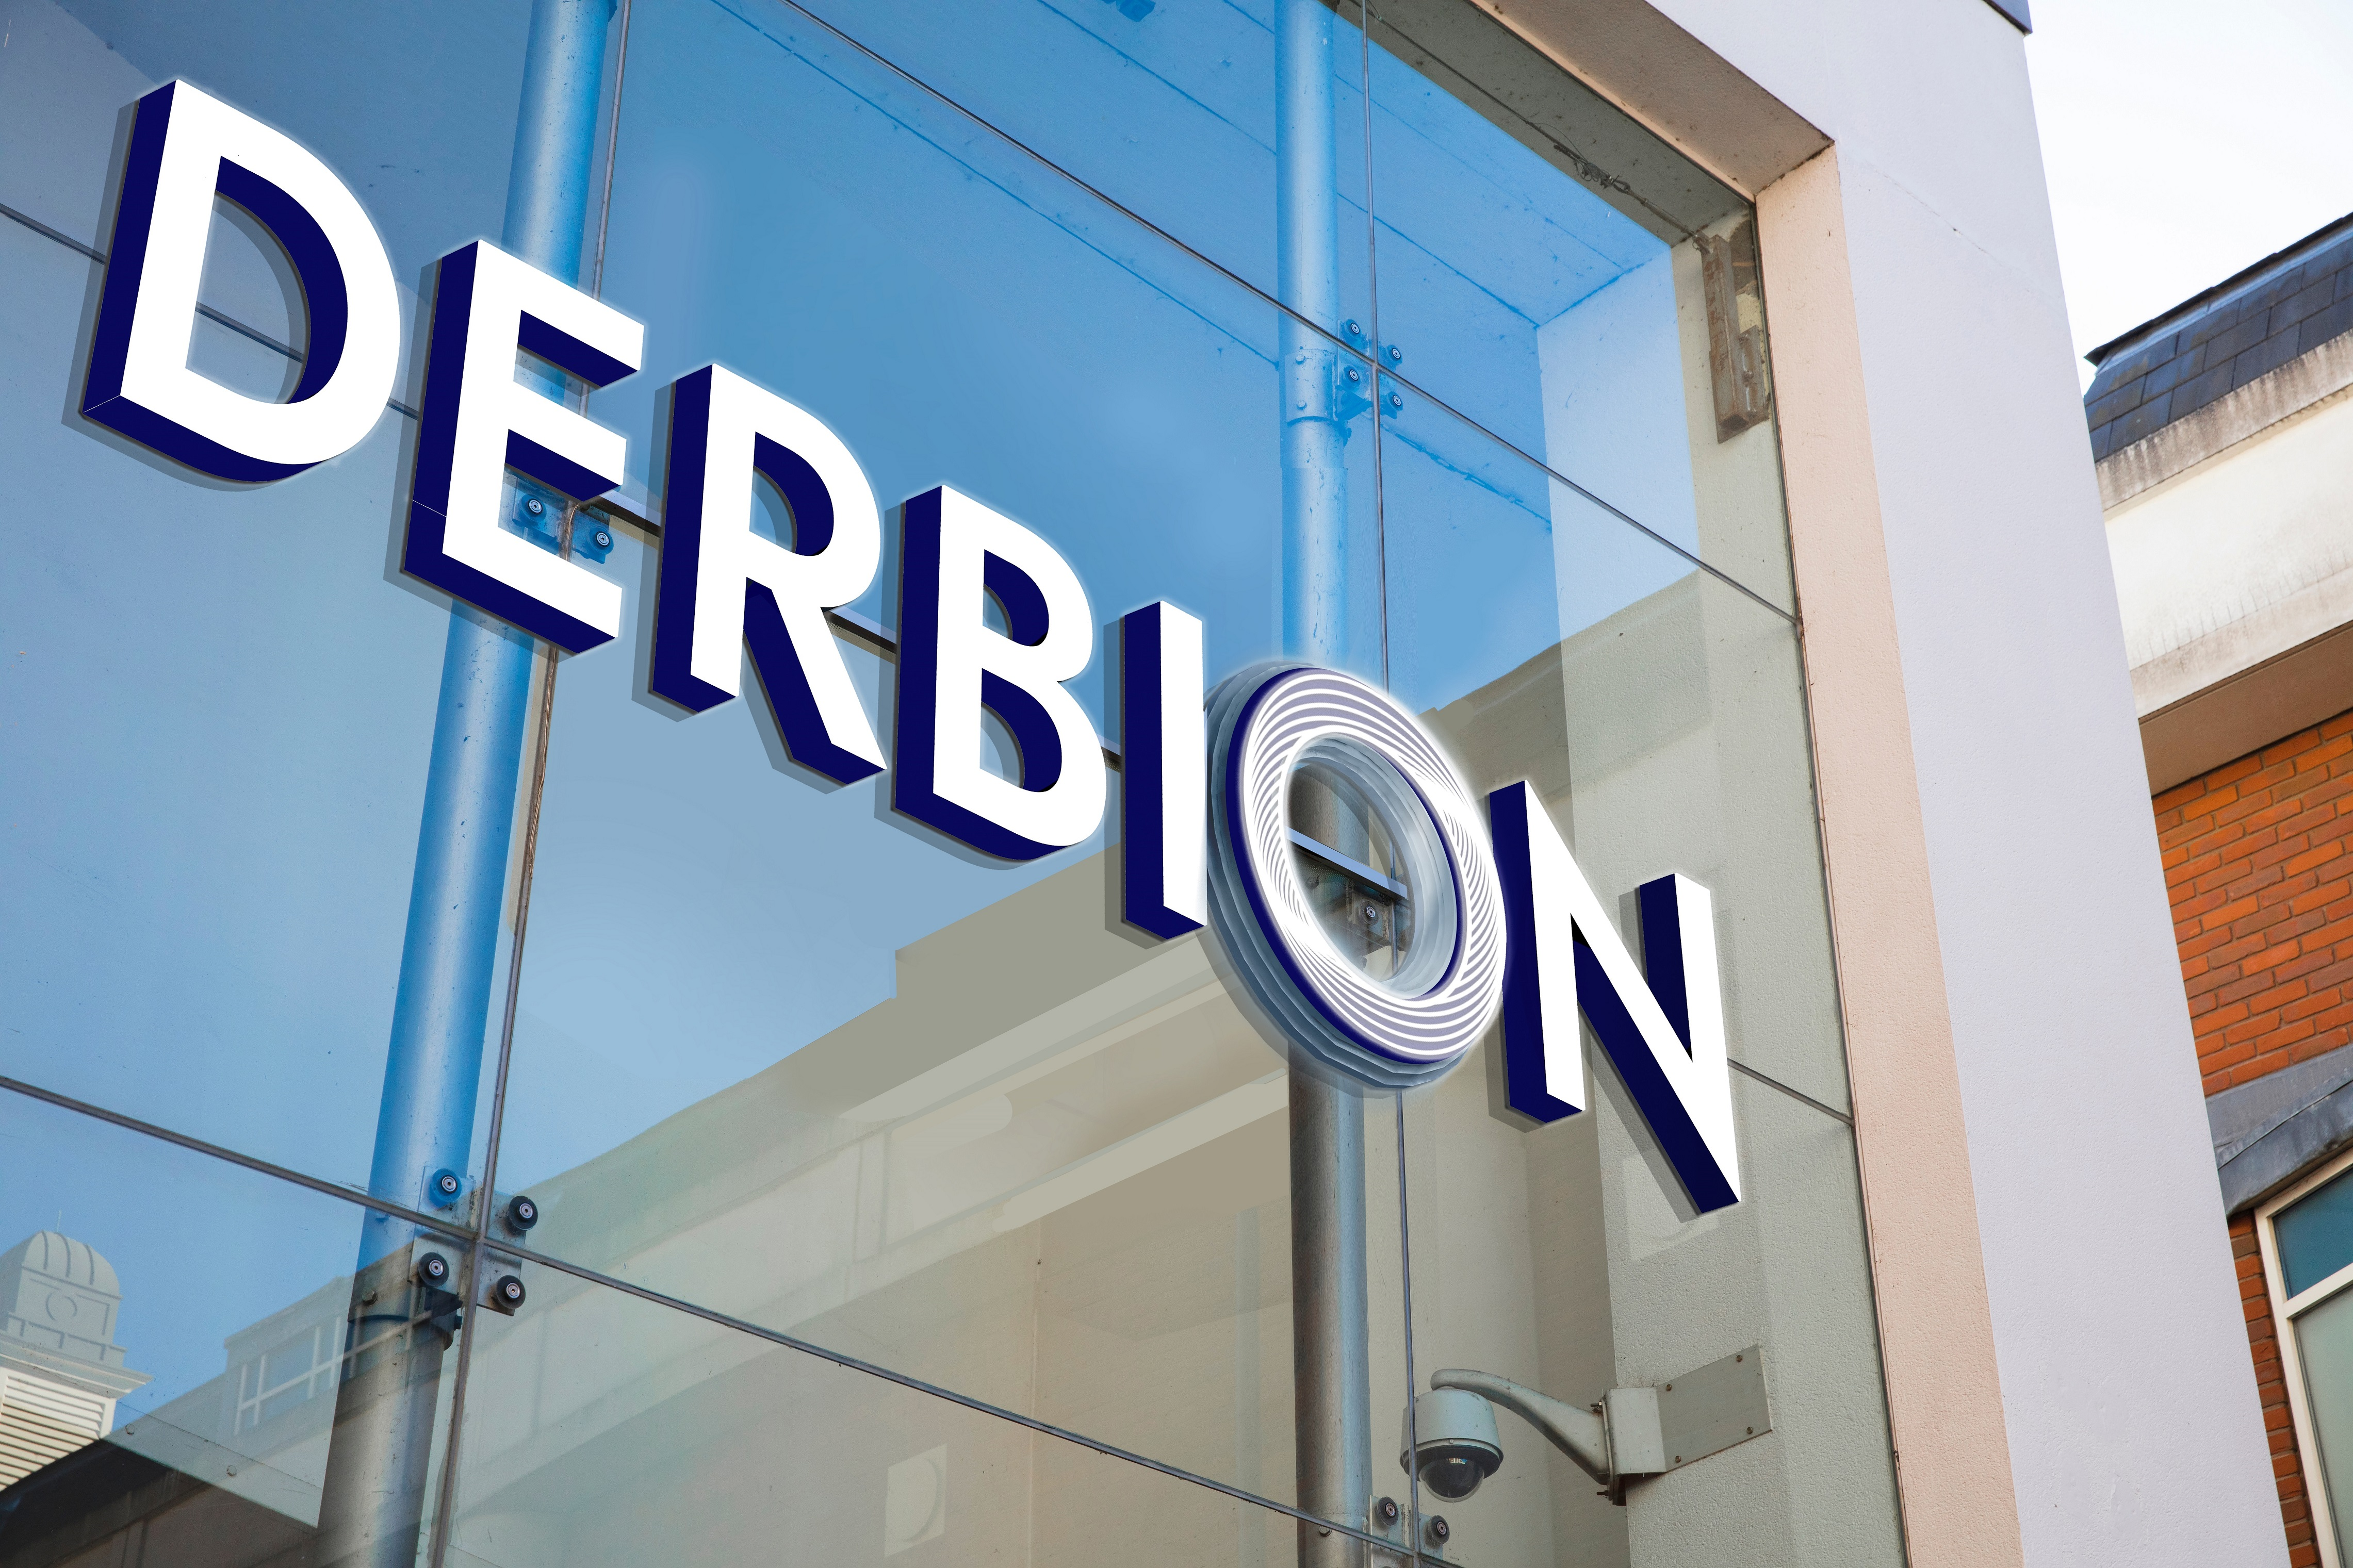 Derby's best loved shopping destination has unveiled its new name, Derbion, reflecting pride in the city and its future potential.